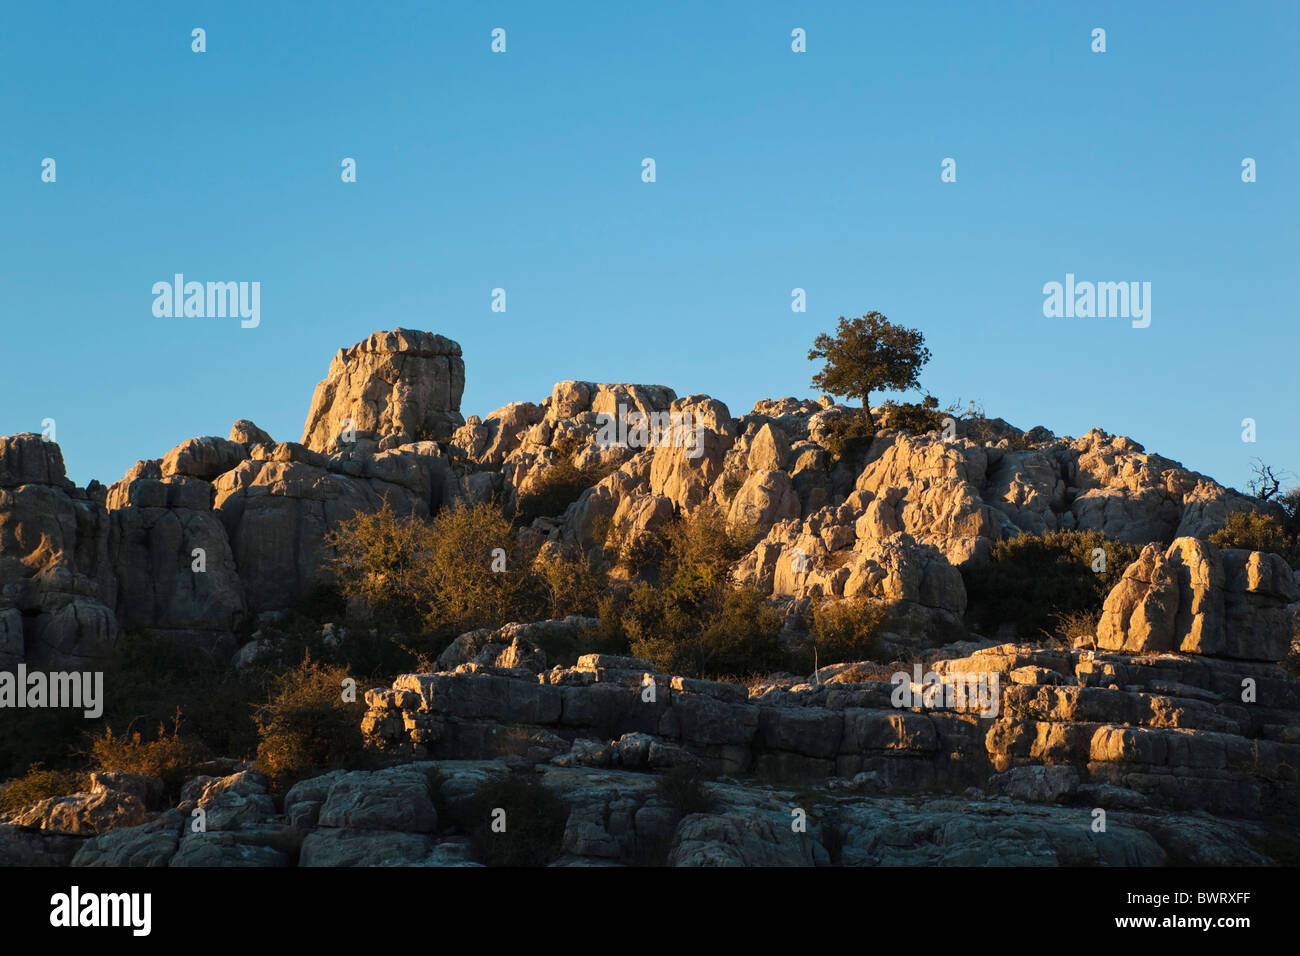 Karstic rock formations in El Torcal Park Nature Reserve near Antequera, Malaga Province, Spain. - Stock Image